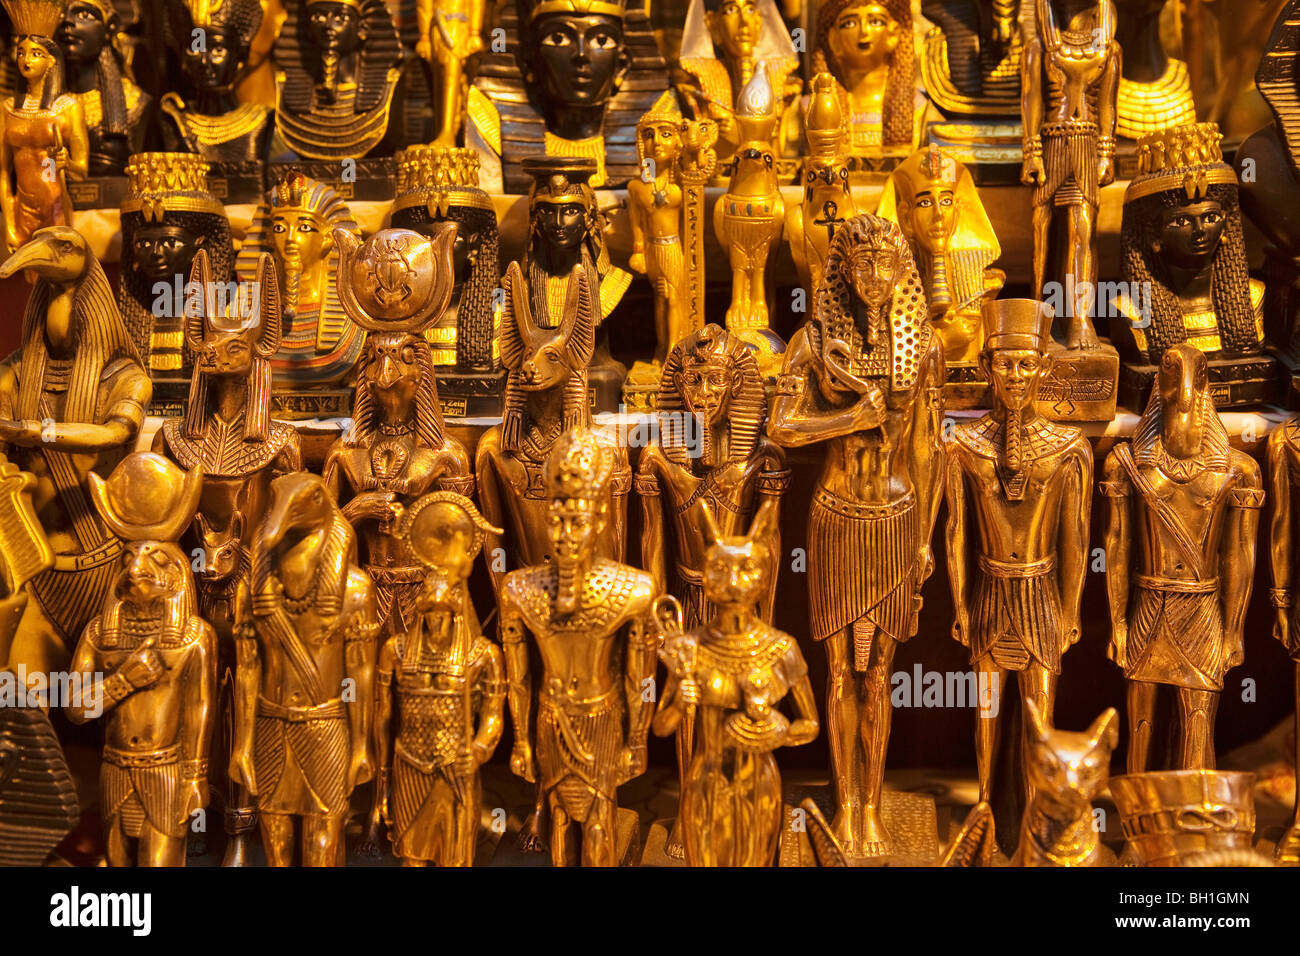 Shining statues of egyptian pharaos and gods, Bazaar Khan el-Khalili, Cairo, Egypt, Africa - Stock Image